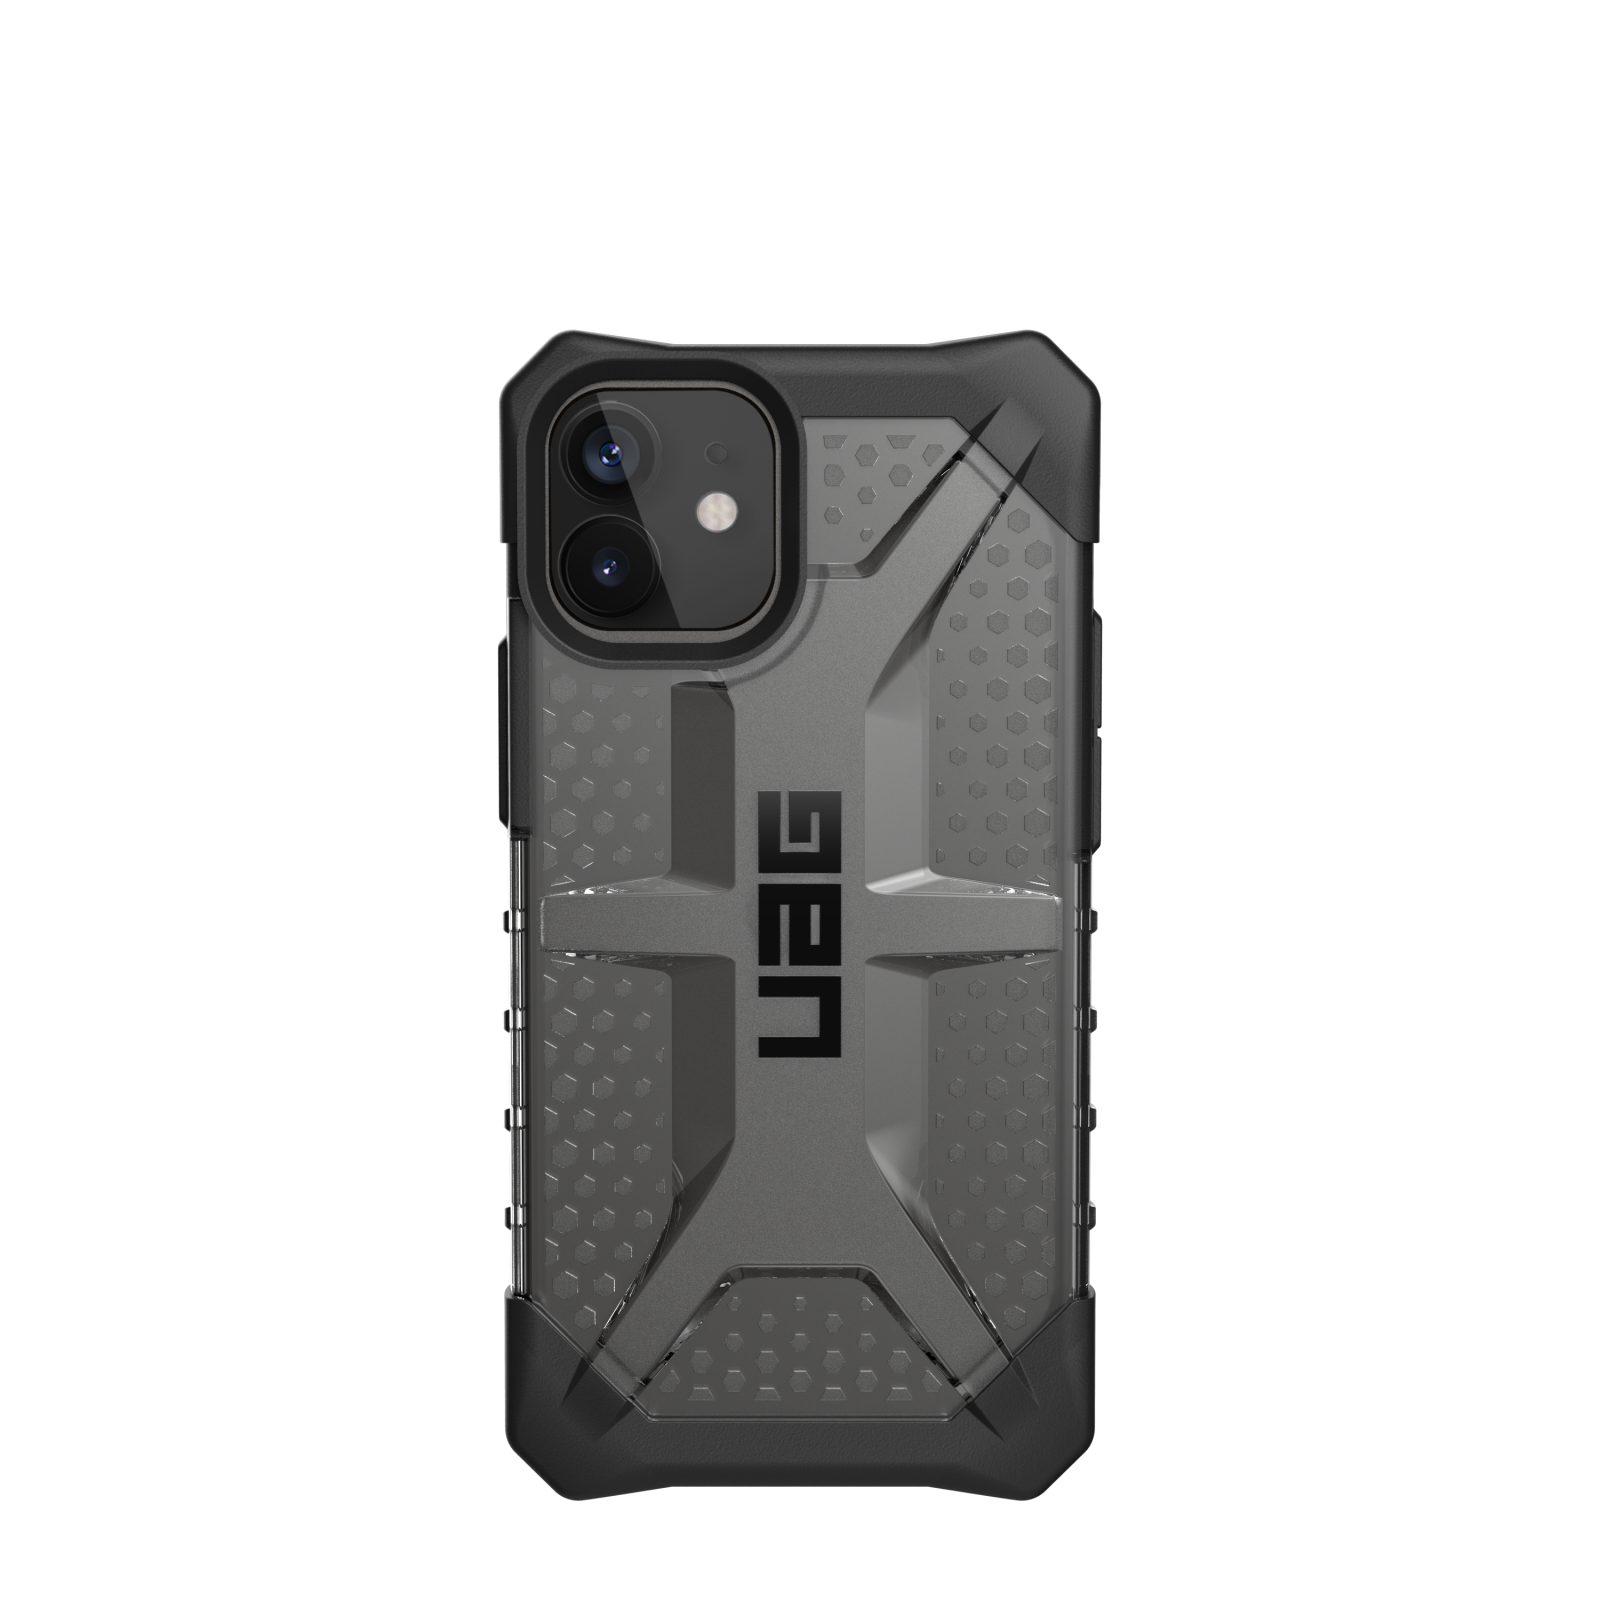 ỐP LƯNG UAG PLASMA CHO IPHONE 12 MINI [5.4-INCH] - Ice